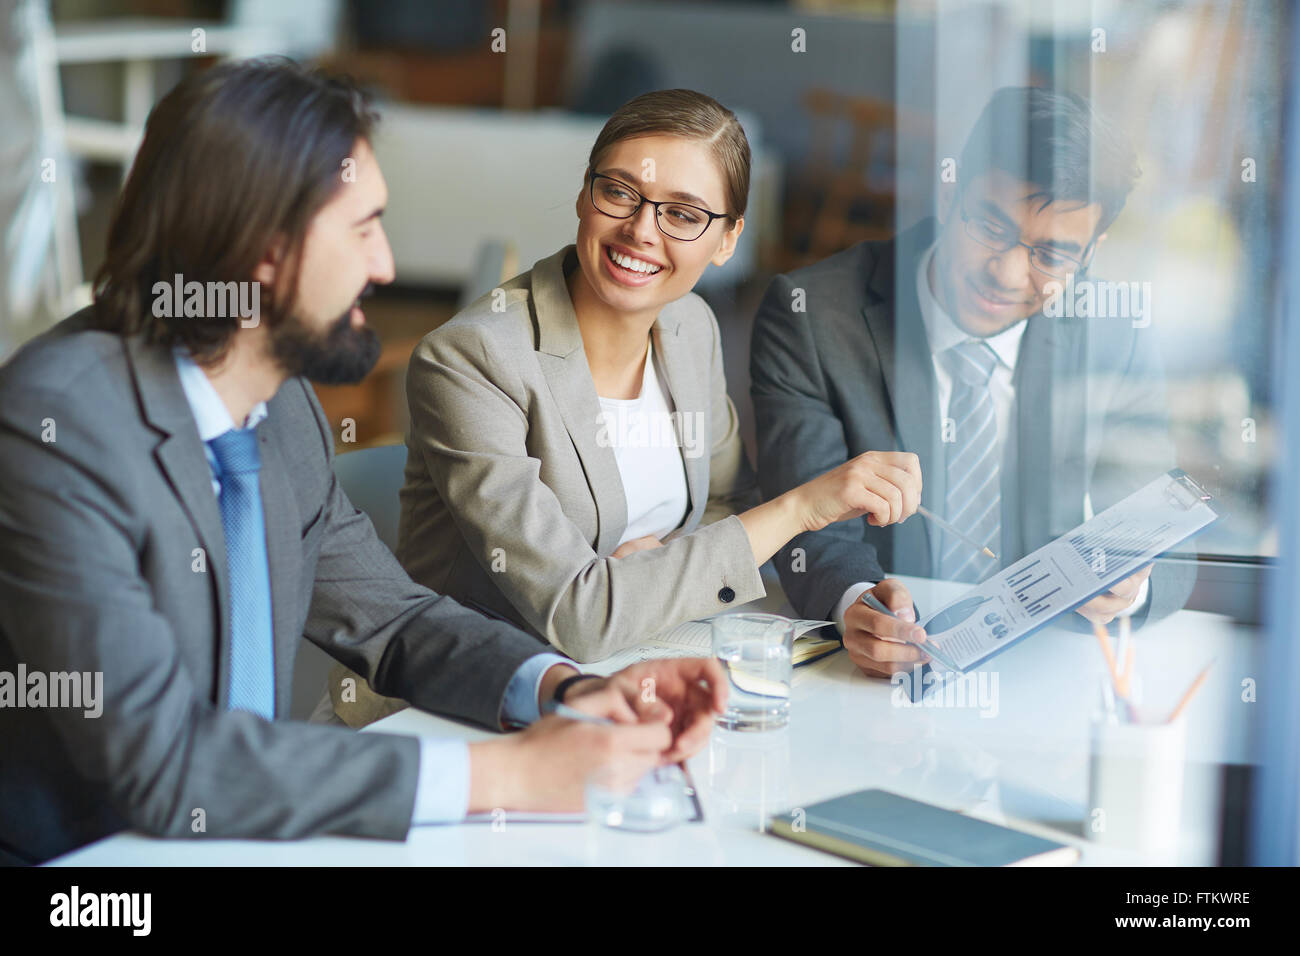 Discussion of data - Stock Image